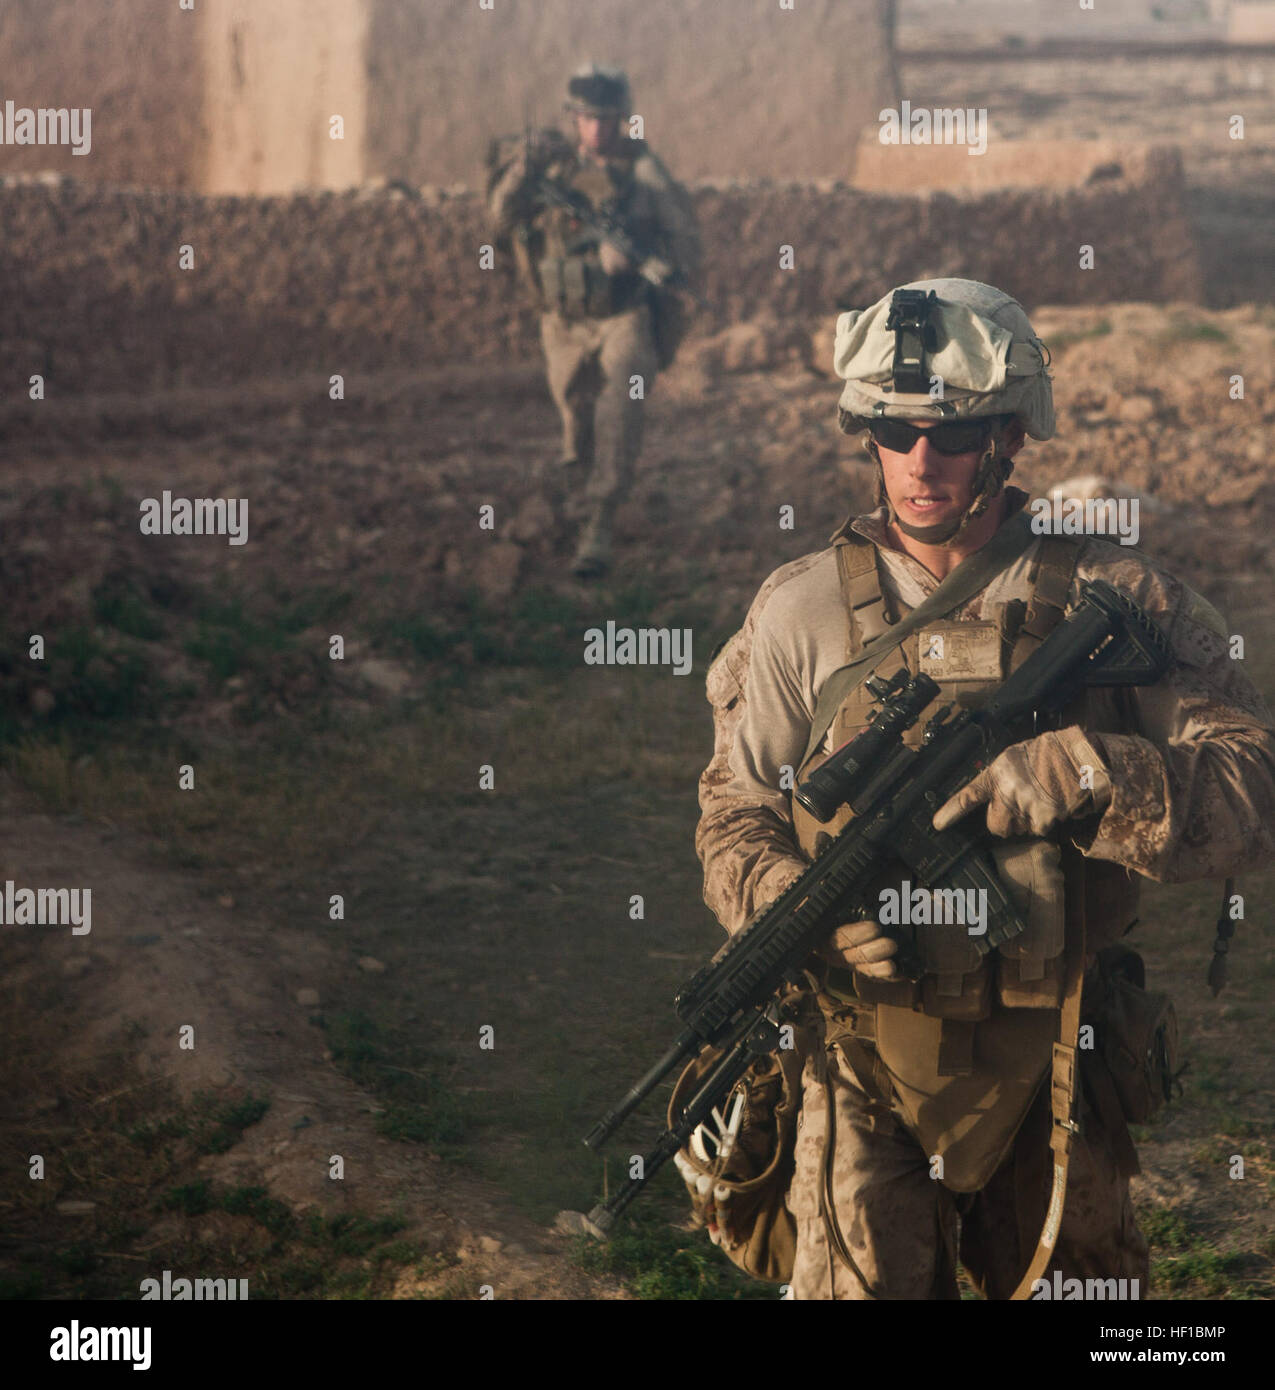 U.S. Marines with Fox Company, 2nd Battalion, 2nd Marine Regiment patrol during a cordon and search mission in Habib Stock Photo